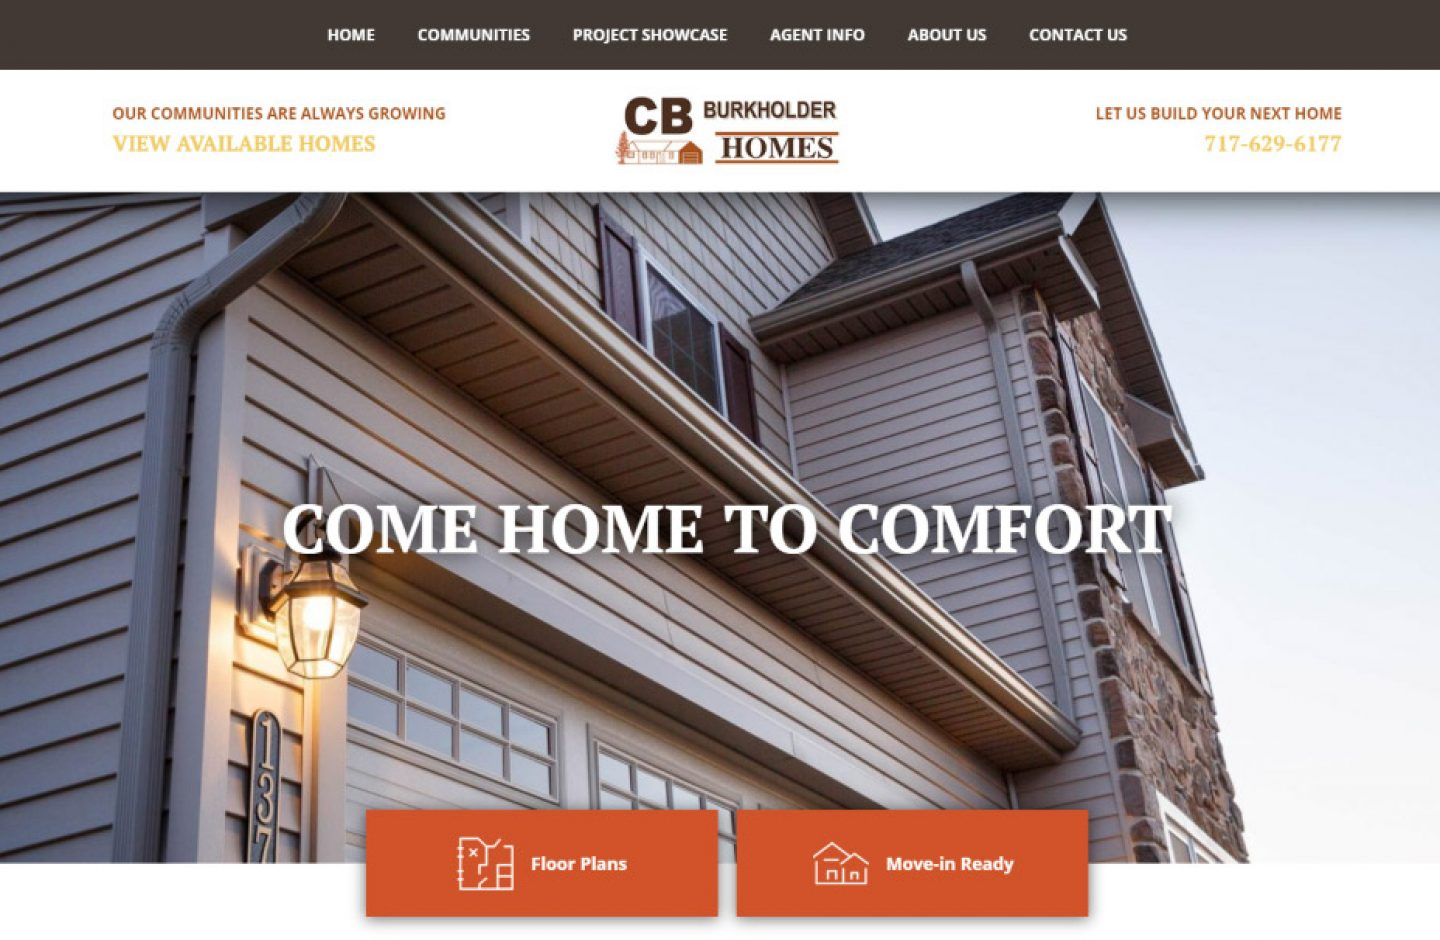 CB Burkholder Homes